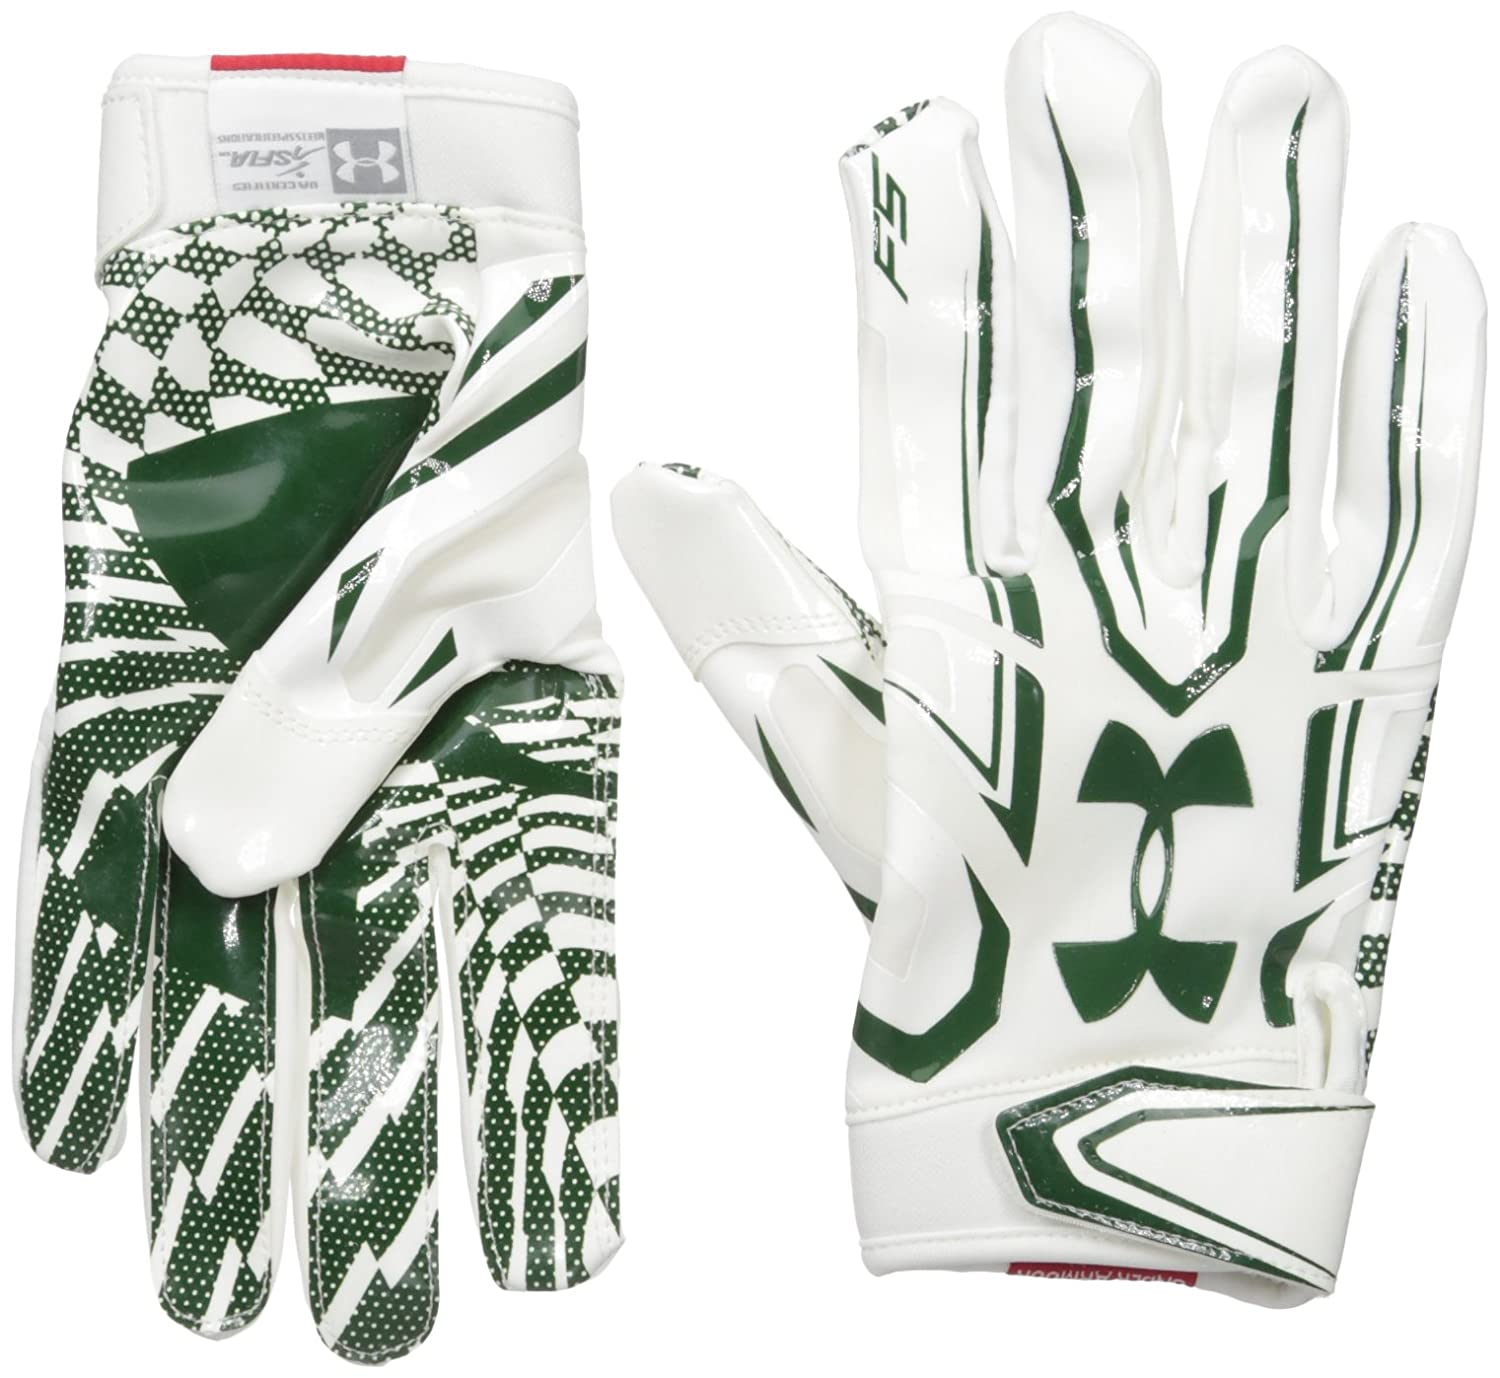 Under Armourメンズf5 Football Gloves B01DEHUV36 White/Forest Green Large Large|White/Forest Green